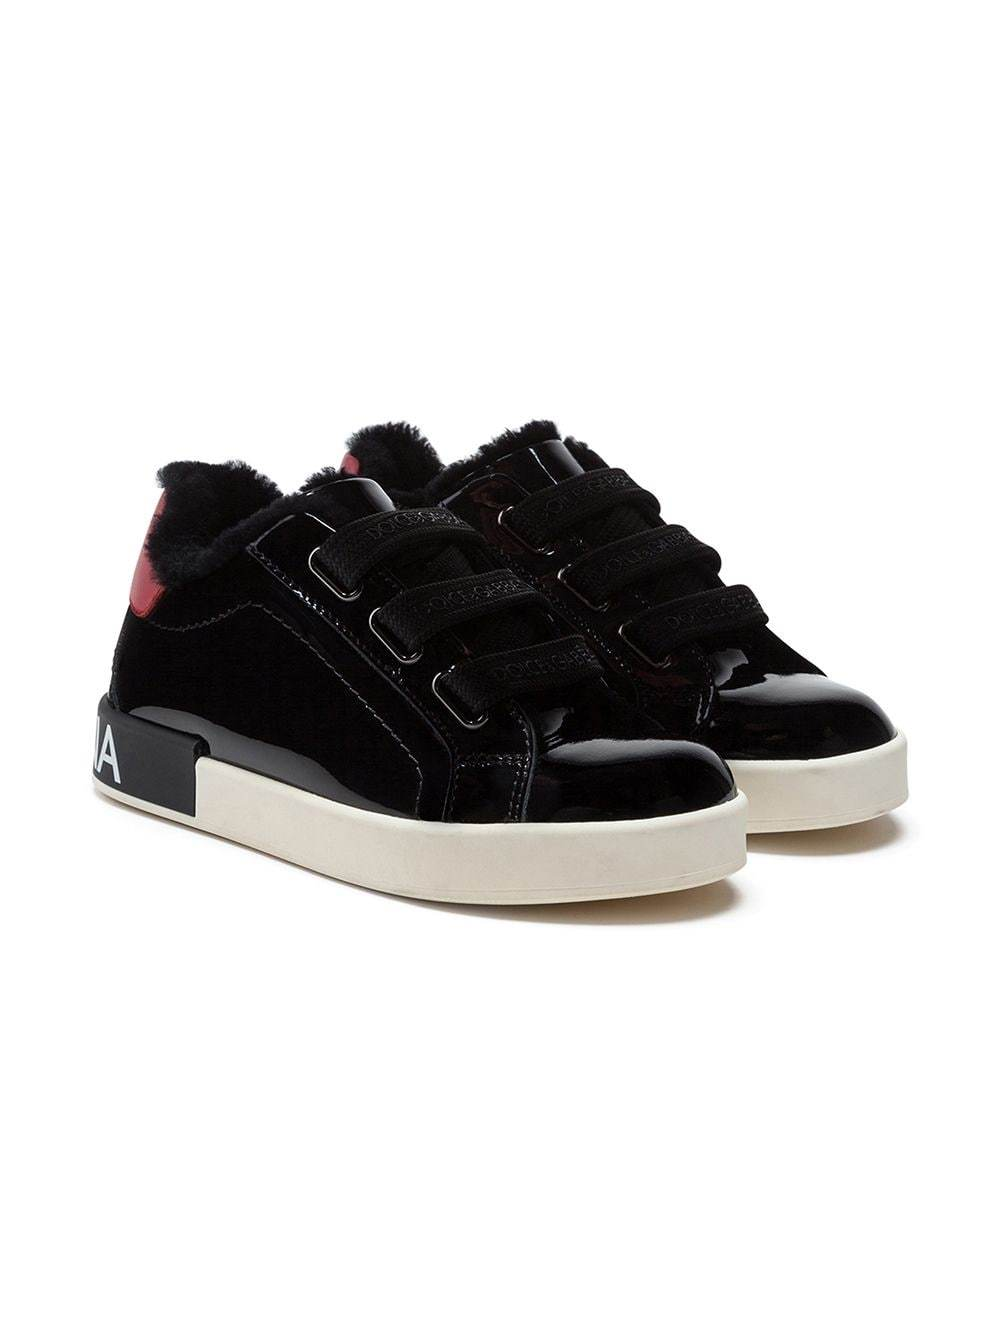 Dolce & Gabbana KIDS Patent Leather Logo Sneakers Black